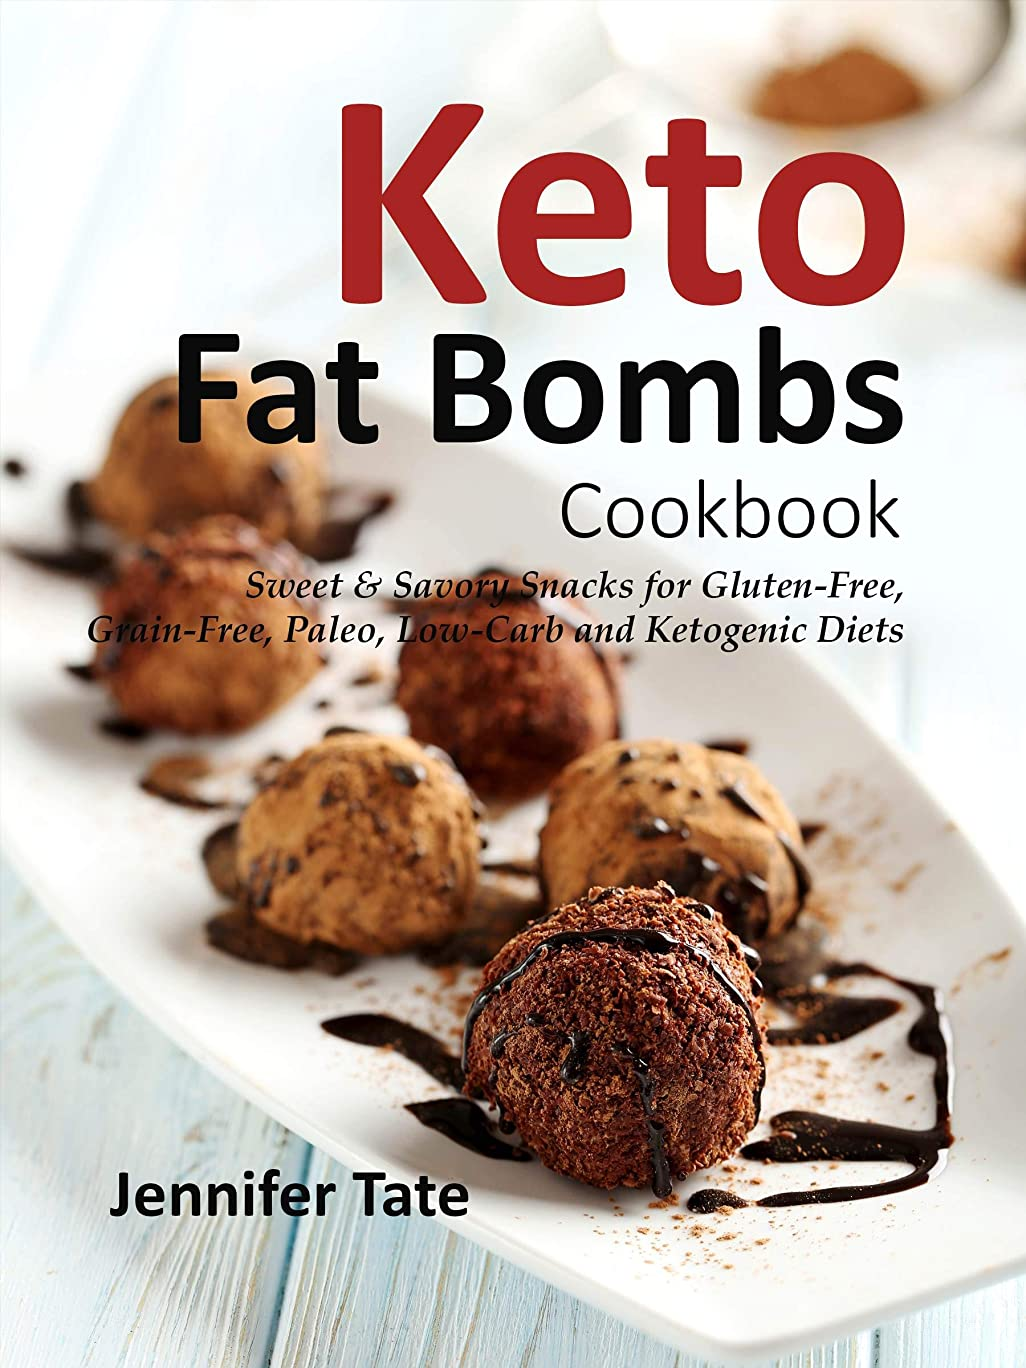 Keto Fat Bombs Cookbook: Sweet & Savory Snacks for Gluten-Free, Grain-Free, Paleo, Low-Carb and Ketogenic Diets (Keto Diet Menu Book 2) (English Edition)